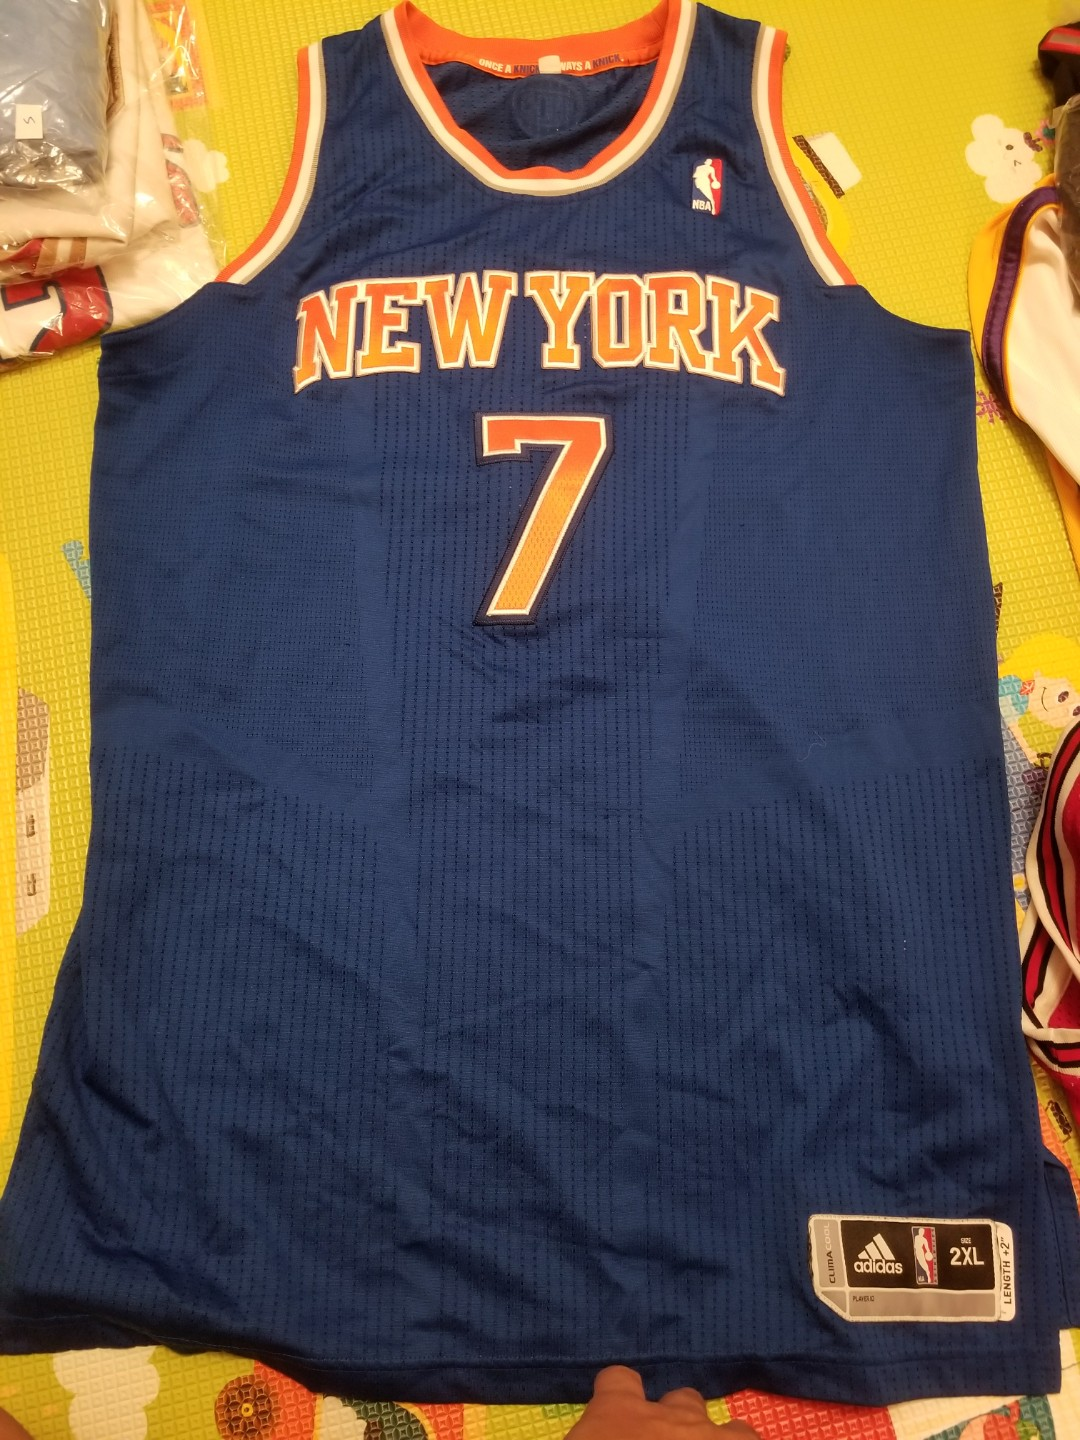 on sale 8a150 0713e Adidas Authentic Camelo Anthony New York Knicks Jersey